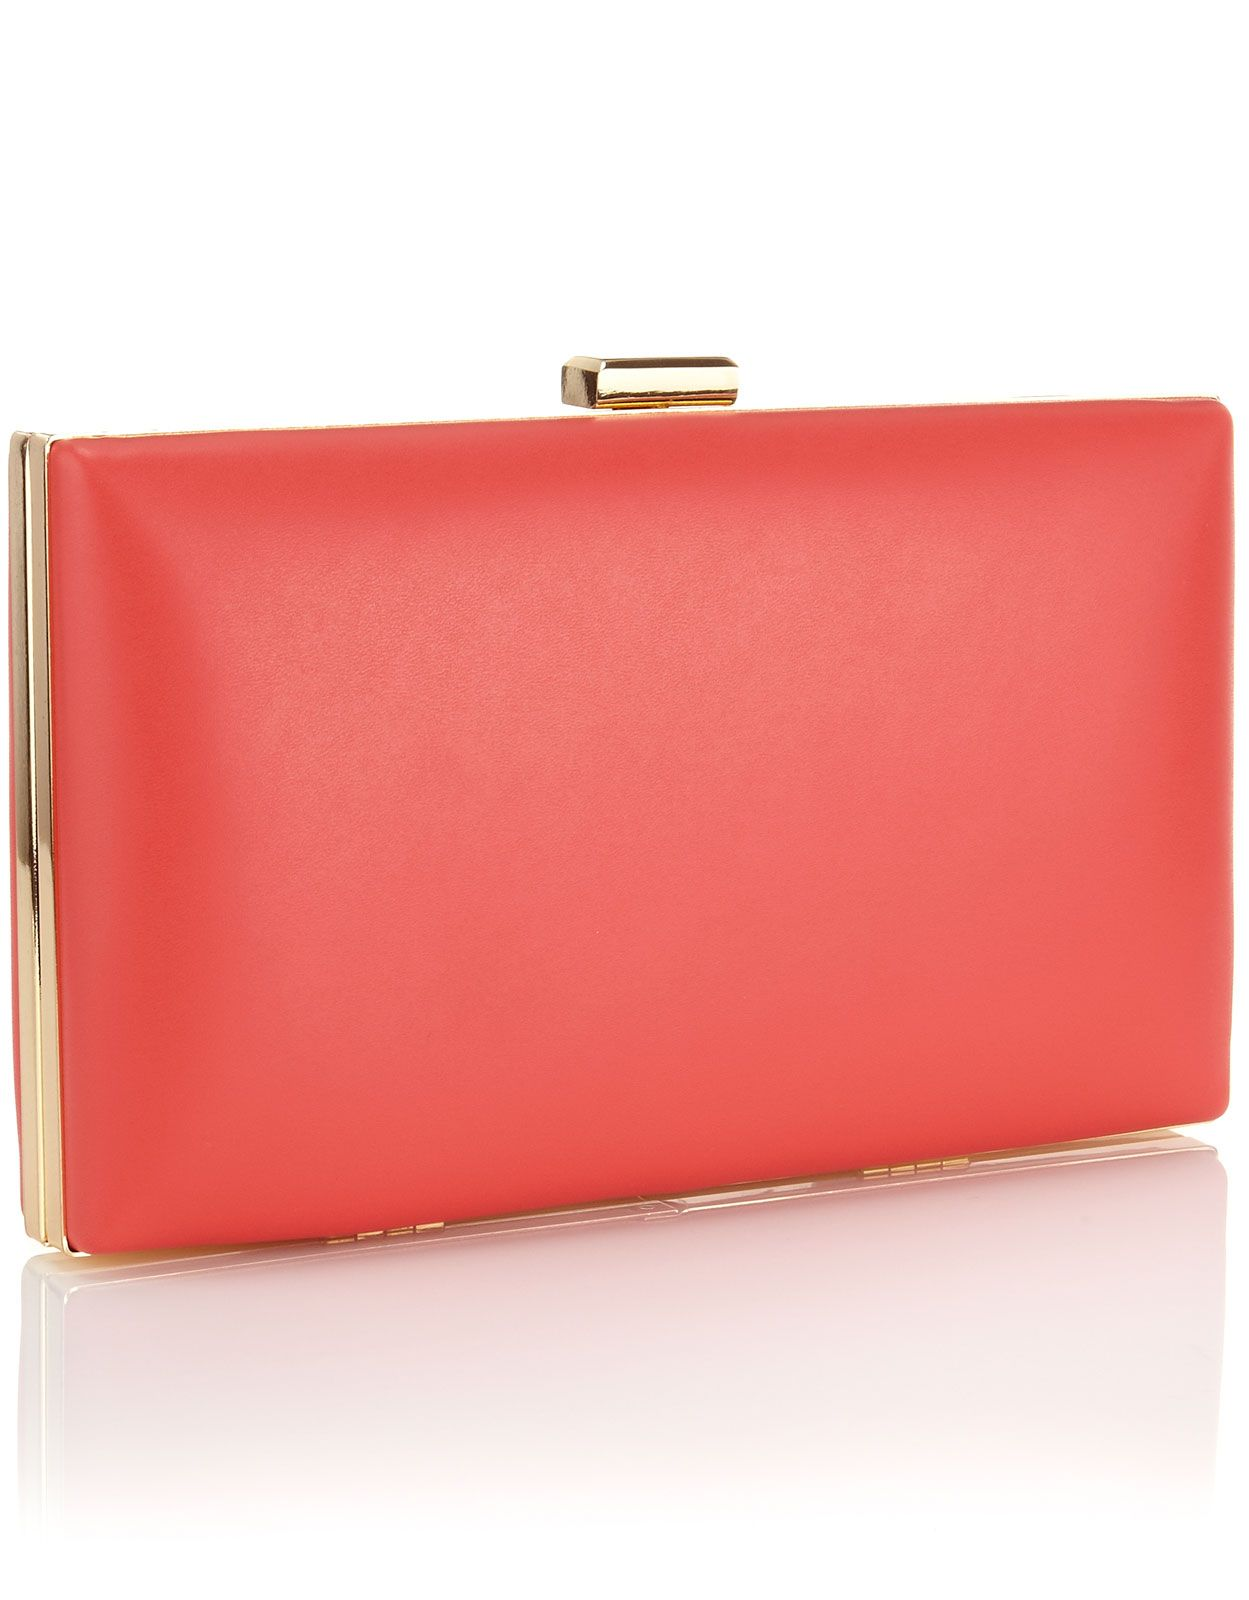 simple coral clutch with gold accents